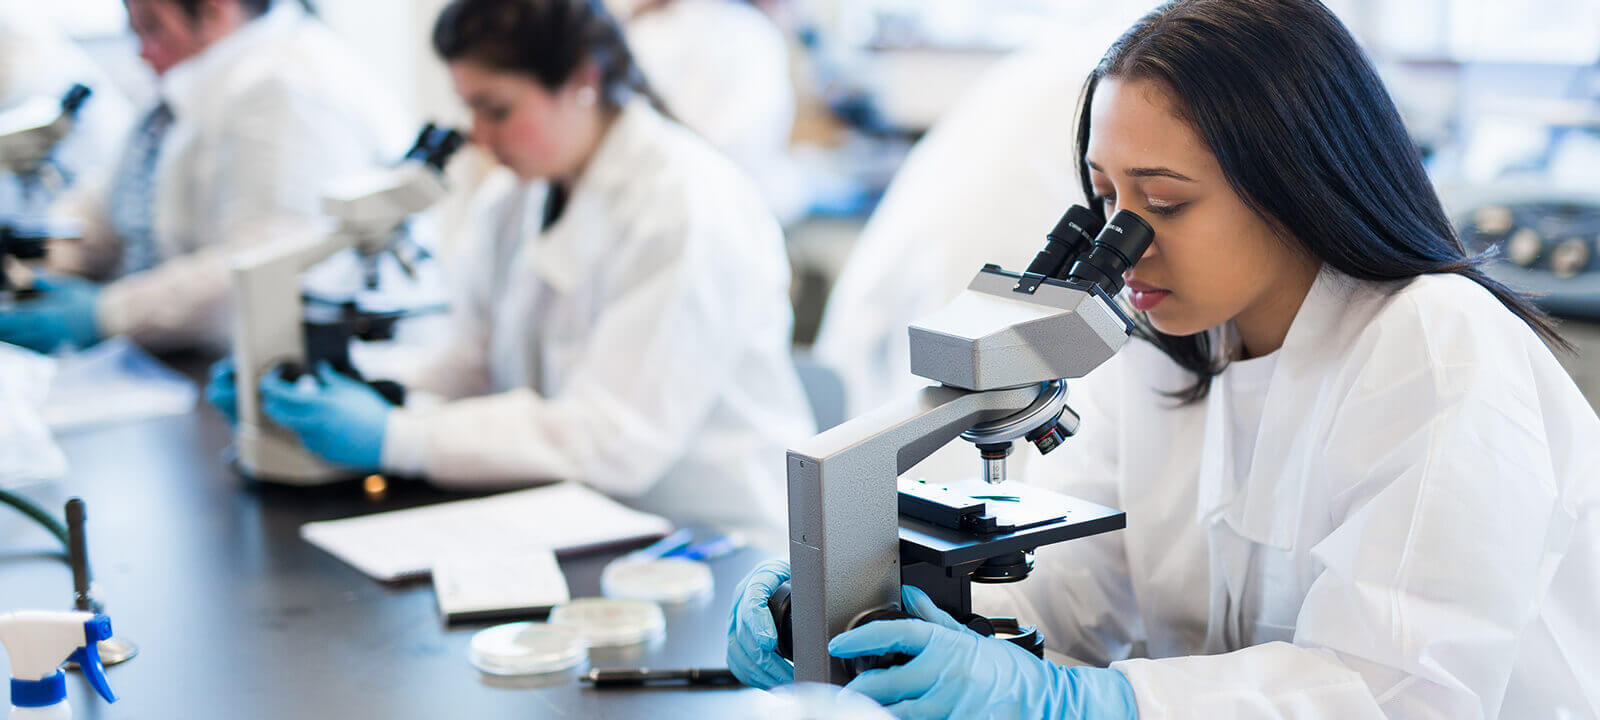 Microbiology student Using microscope.